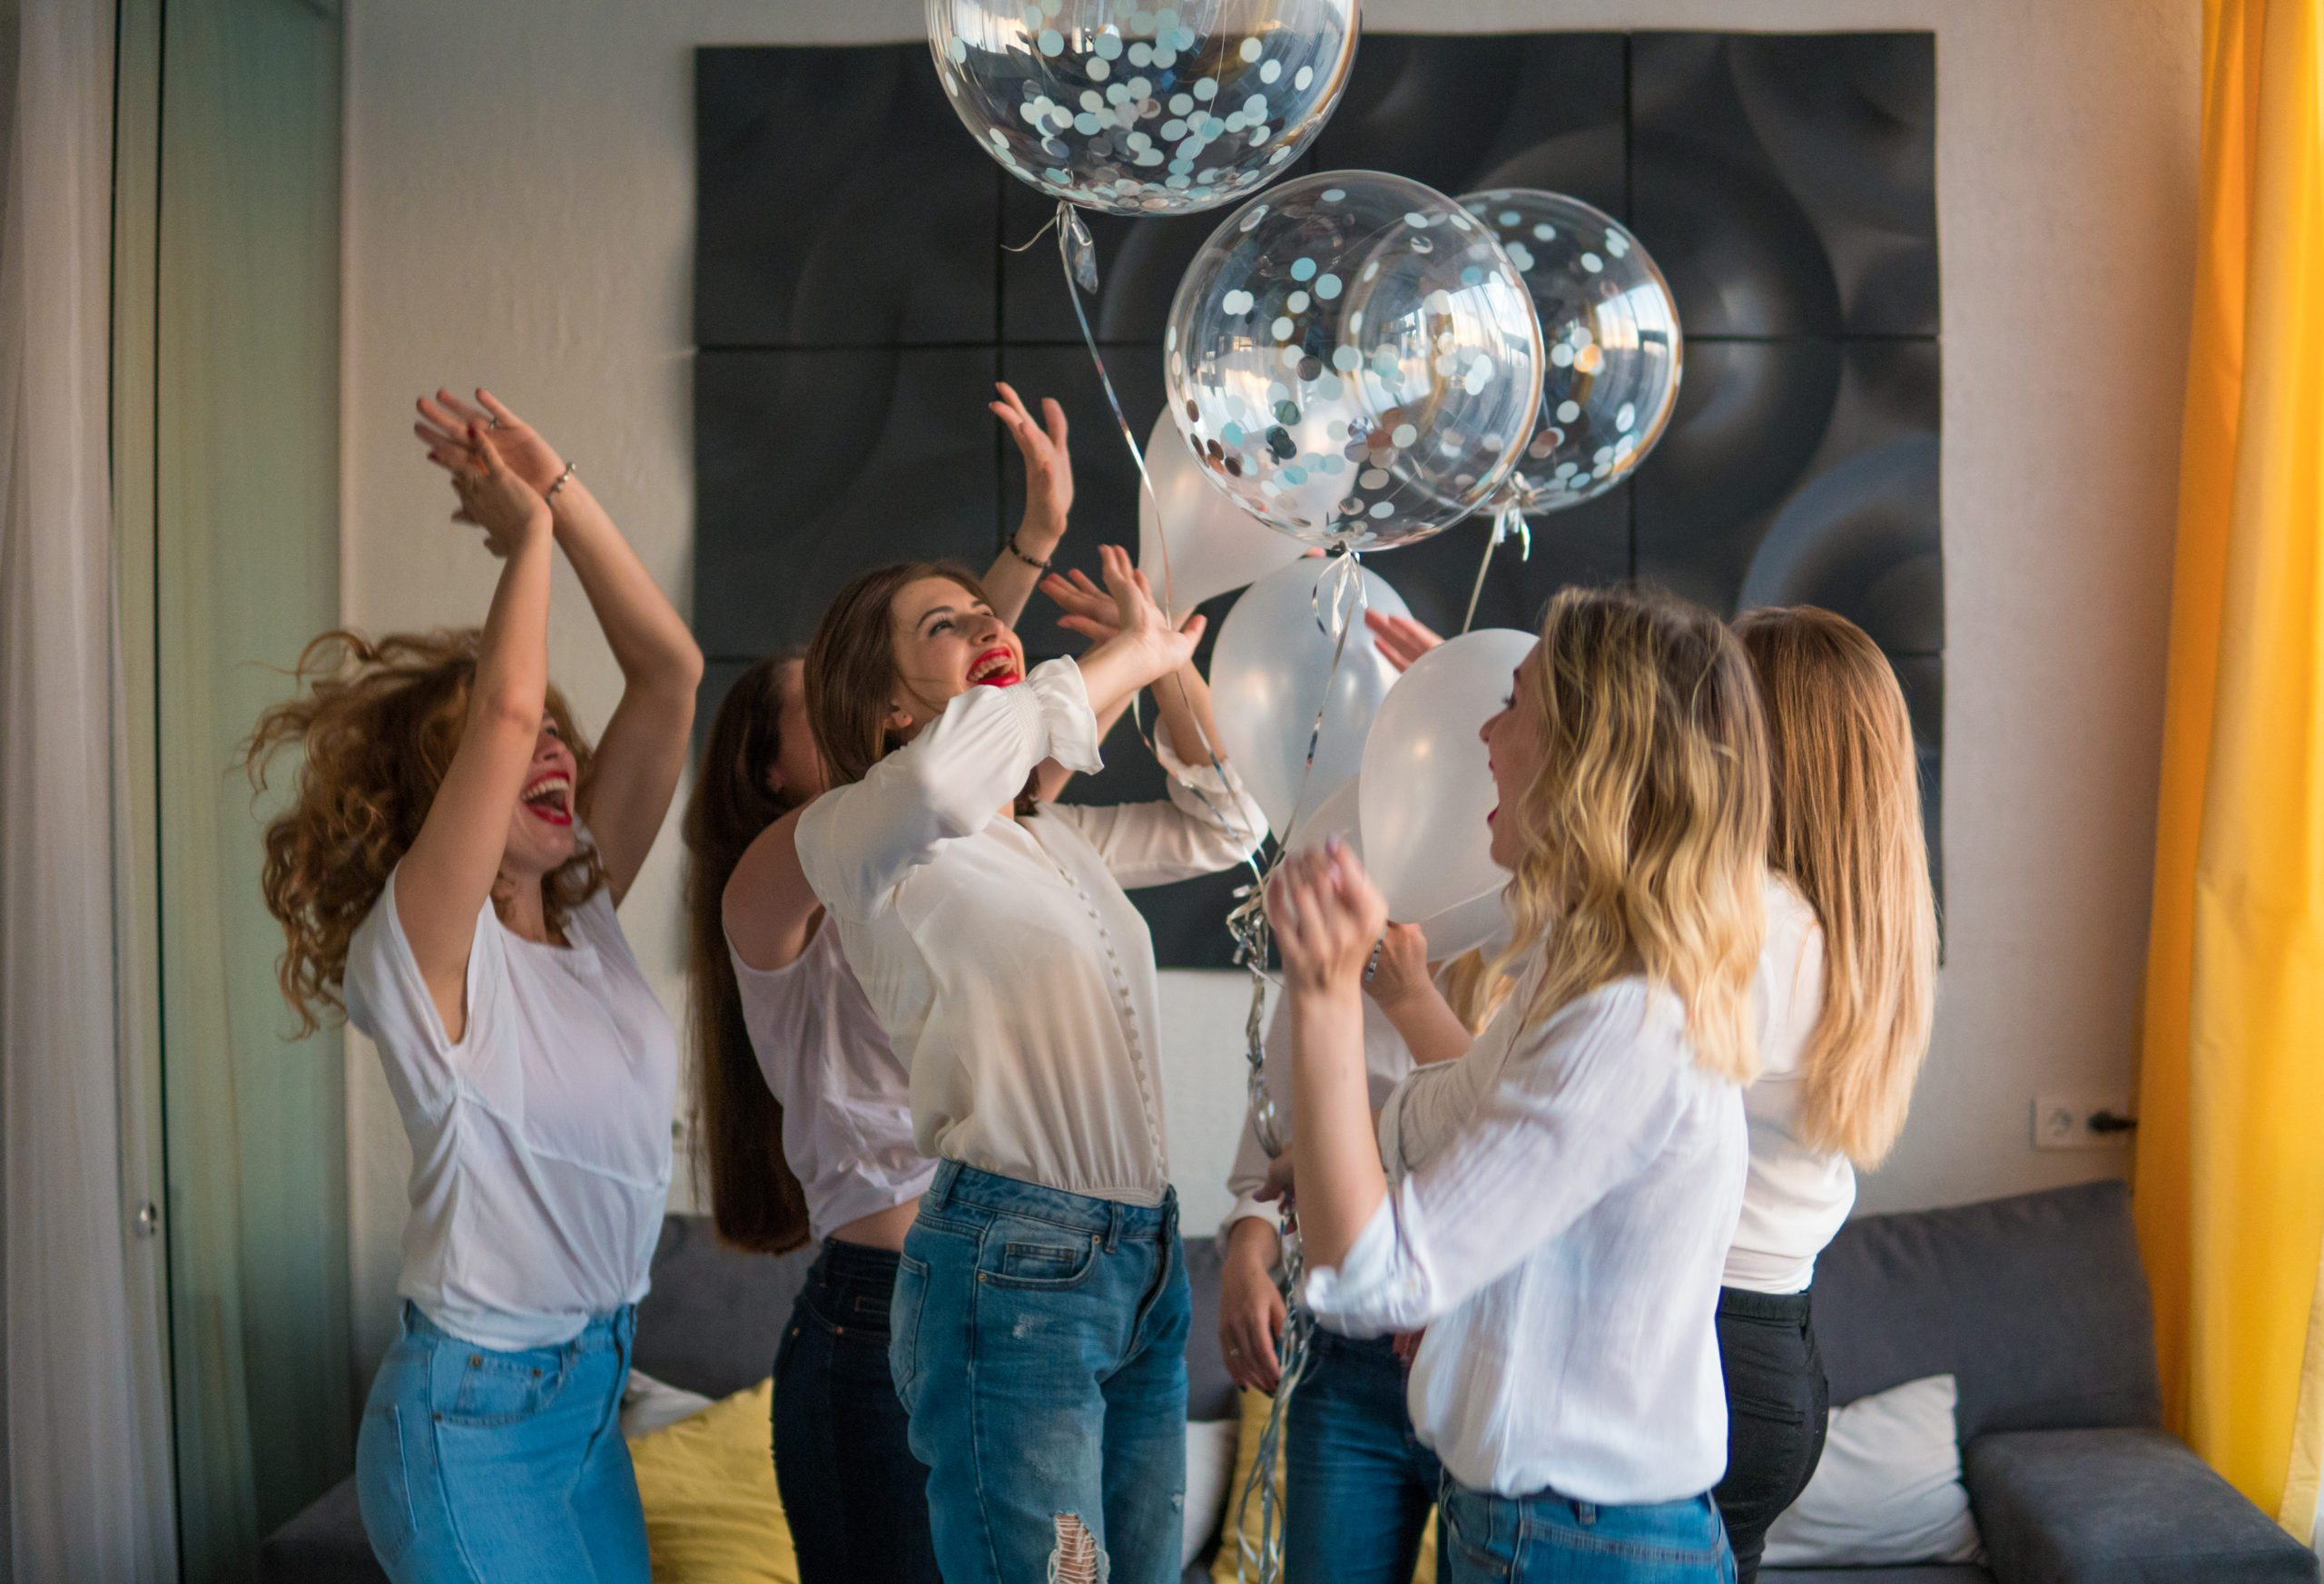 Girls Party. Beautiful Women Friends At Bachelorette Party. They dance with baloons.